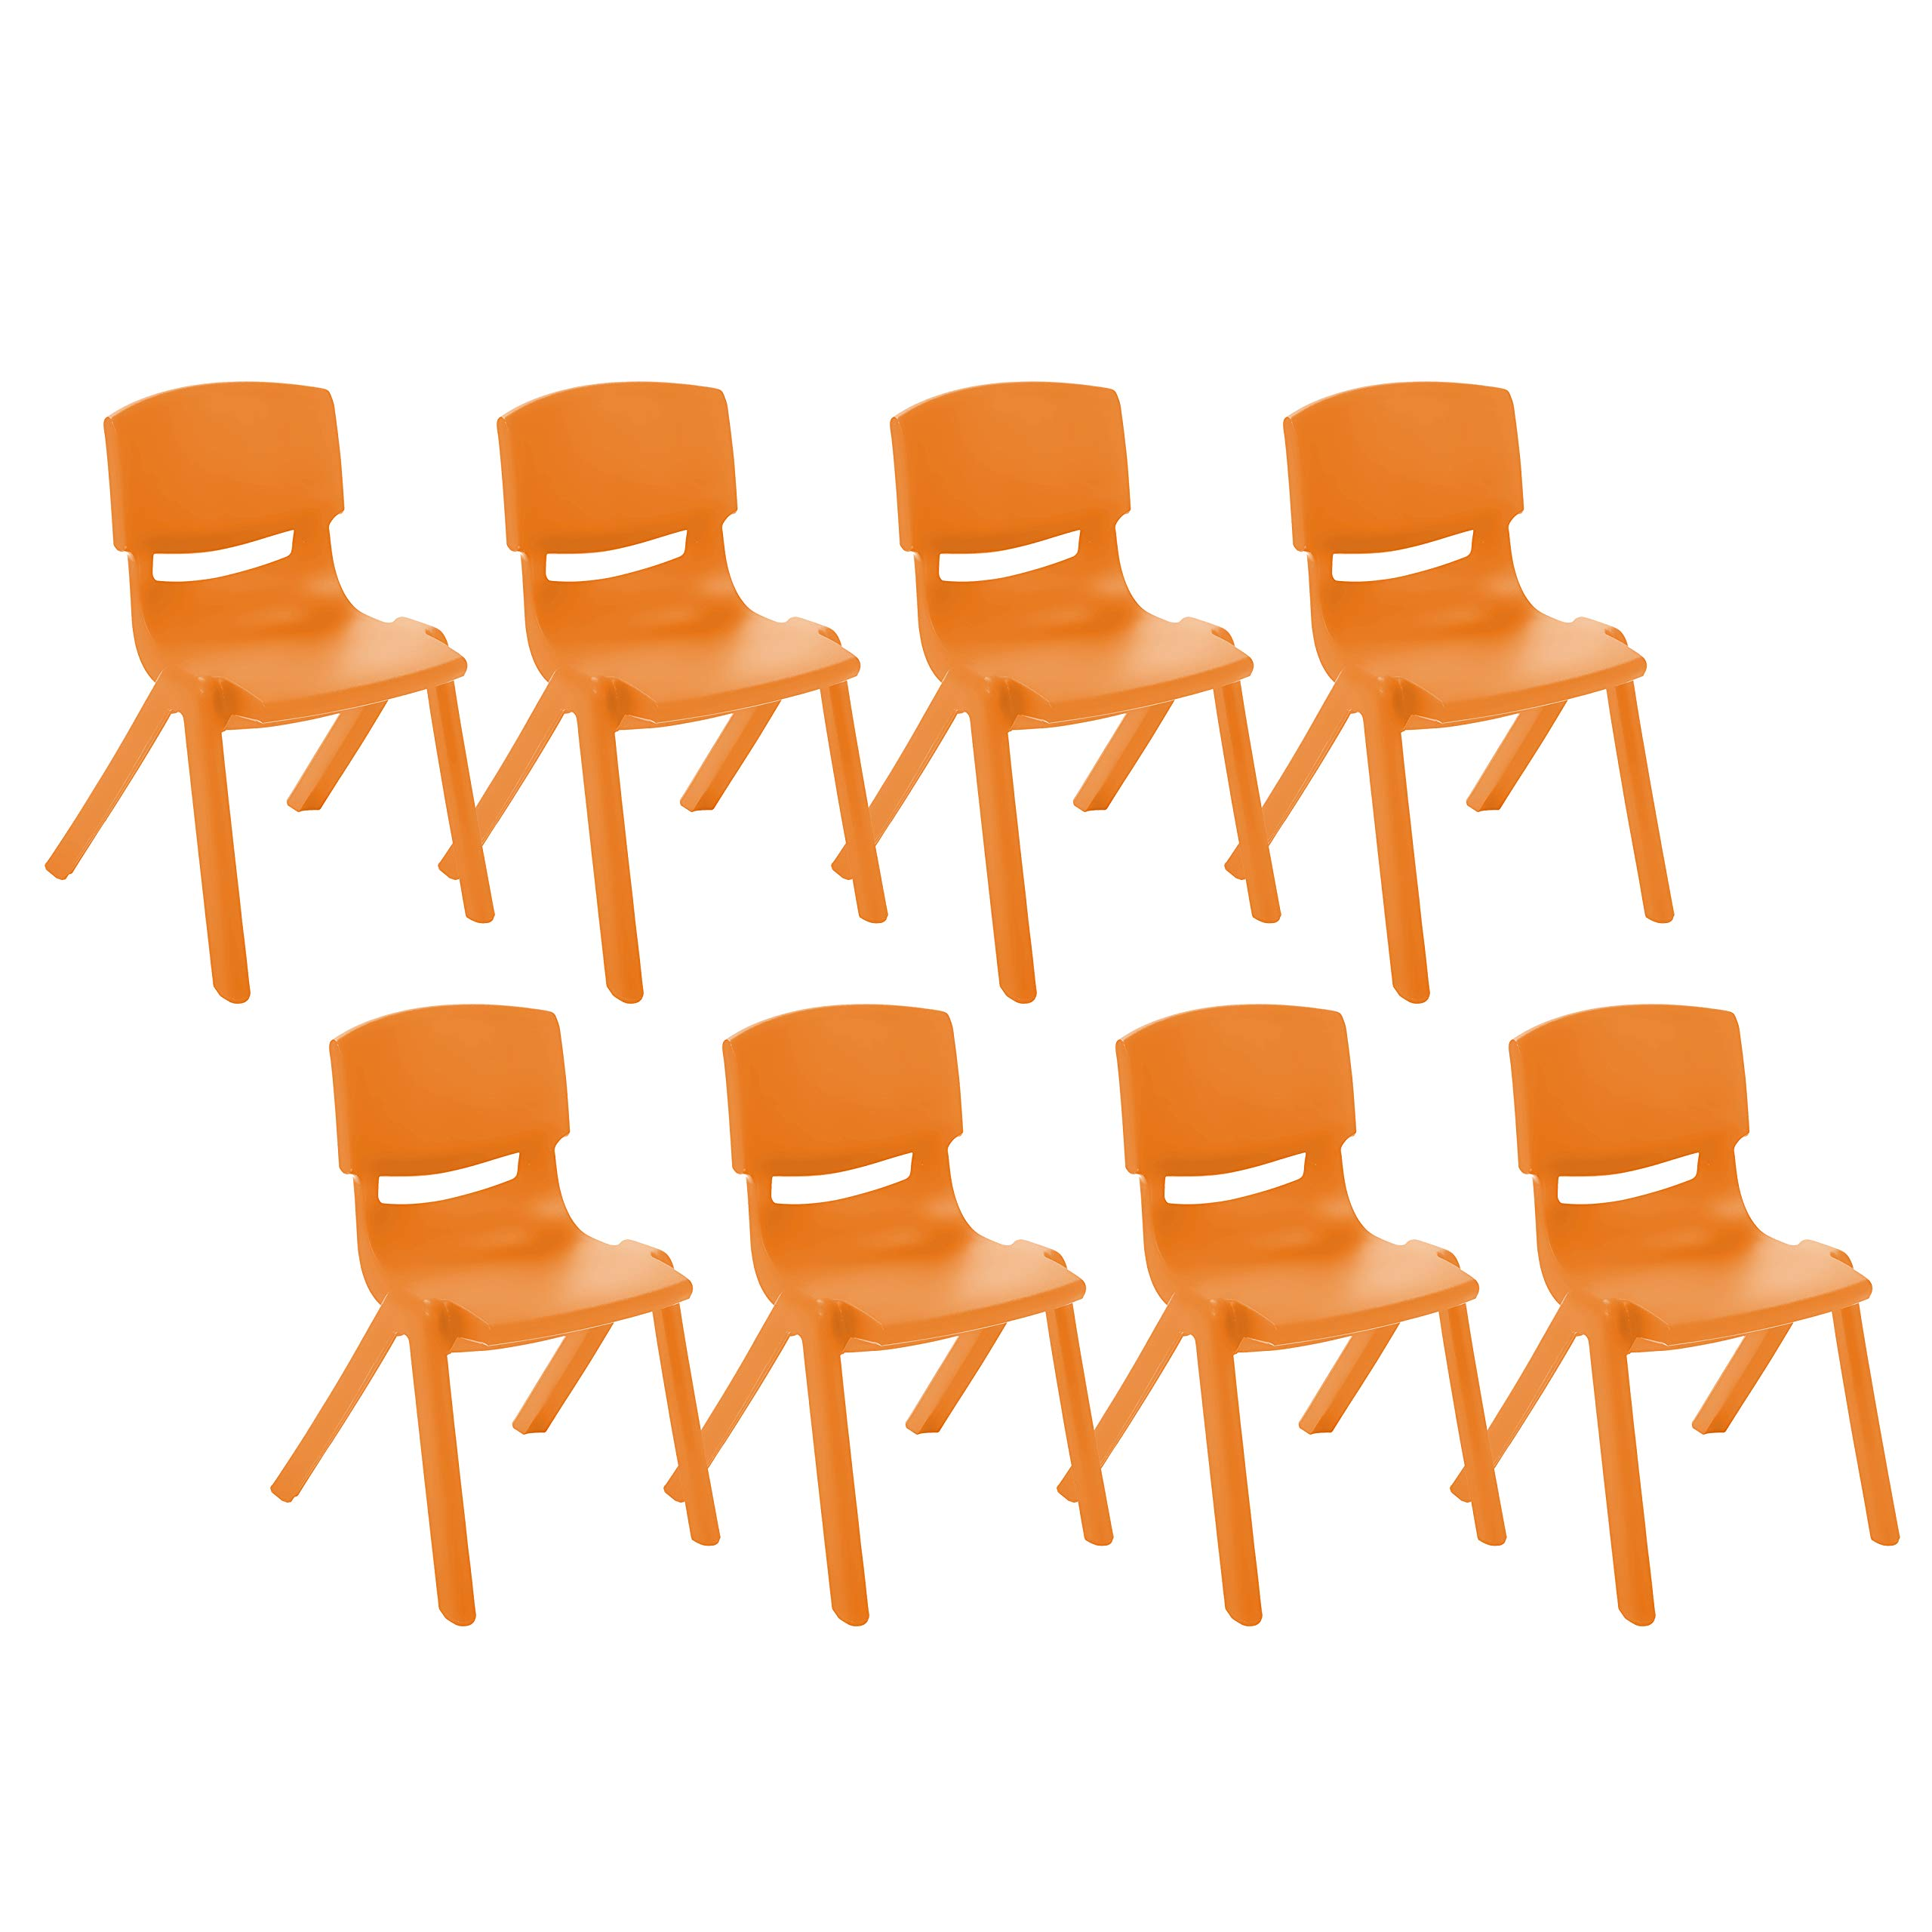 ECR4Kids 14 inch Plastic Stackable Classroom Chairs, Indoor/Outdoor Resin Stack Chairs for Kids, Orange (8-Pack) by ECR4Kids